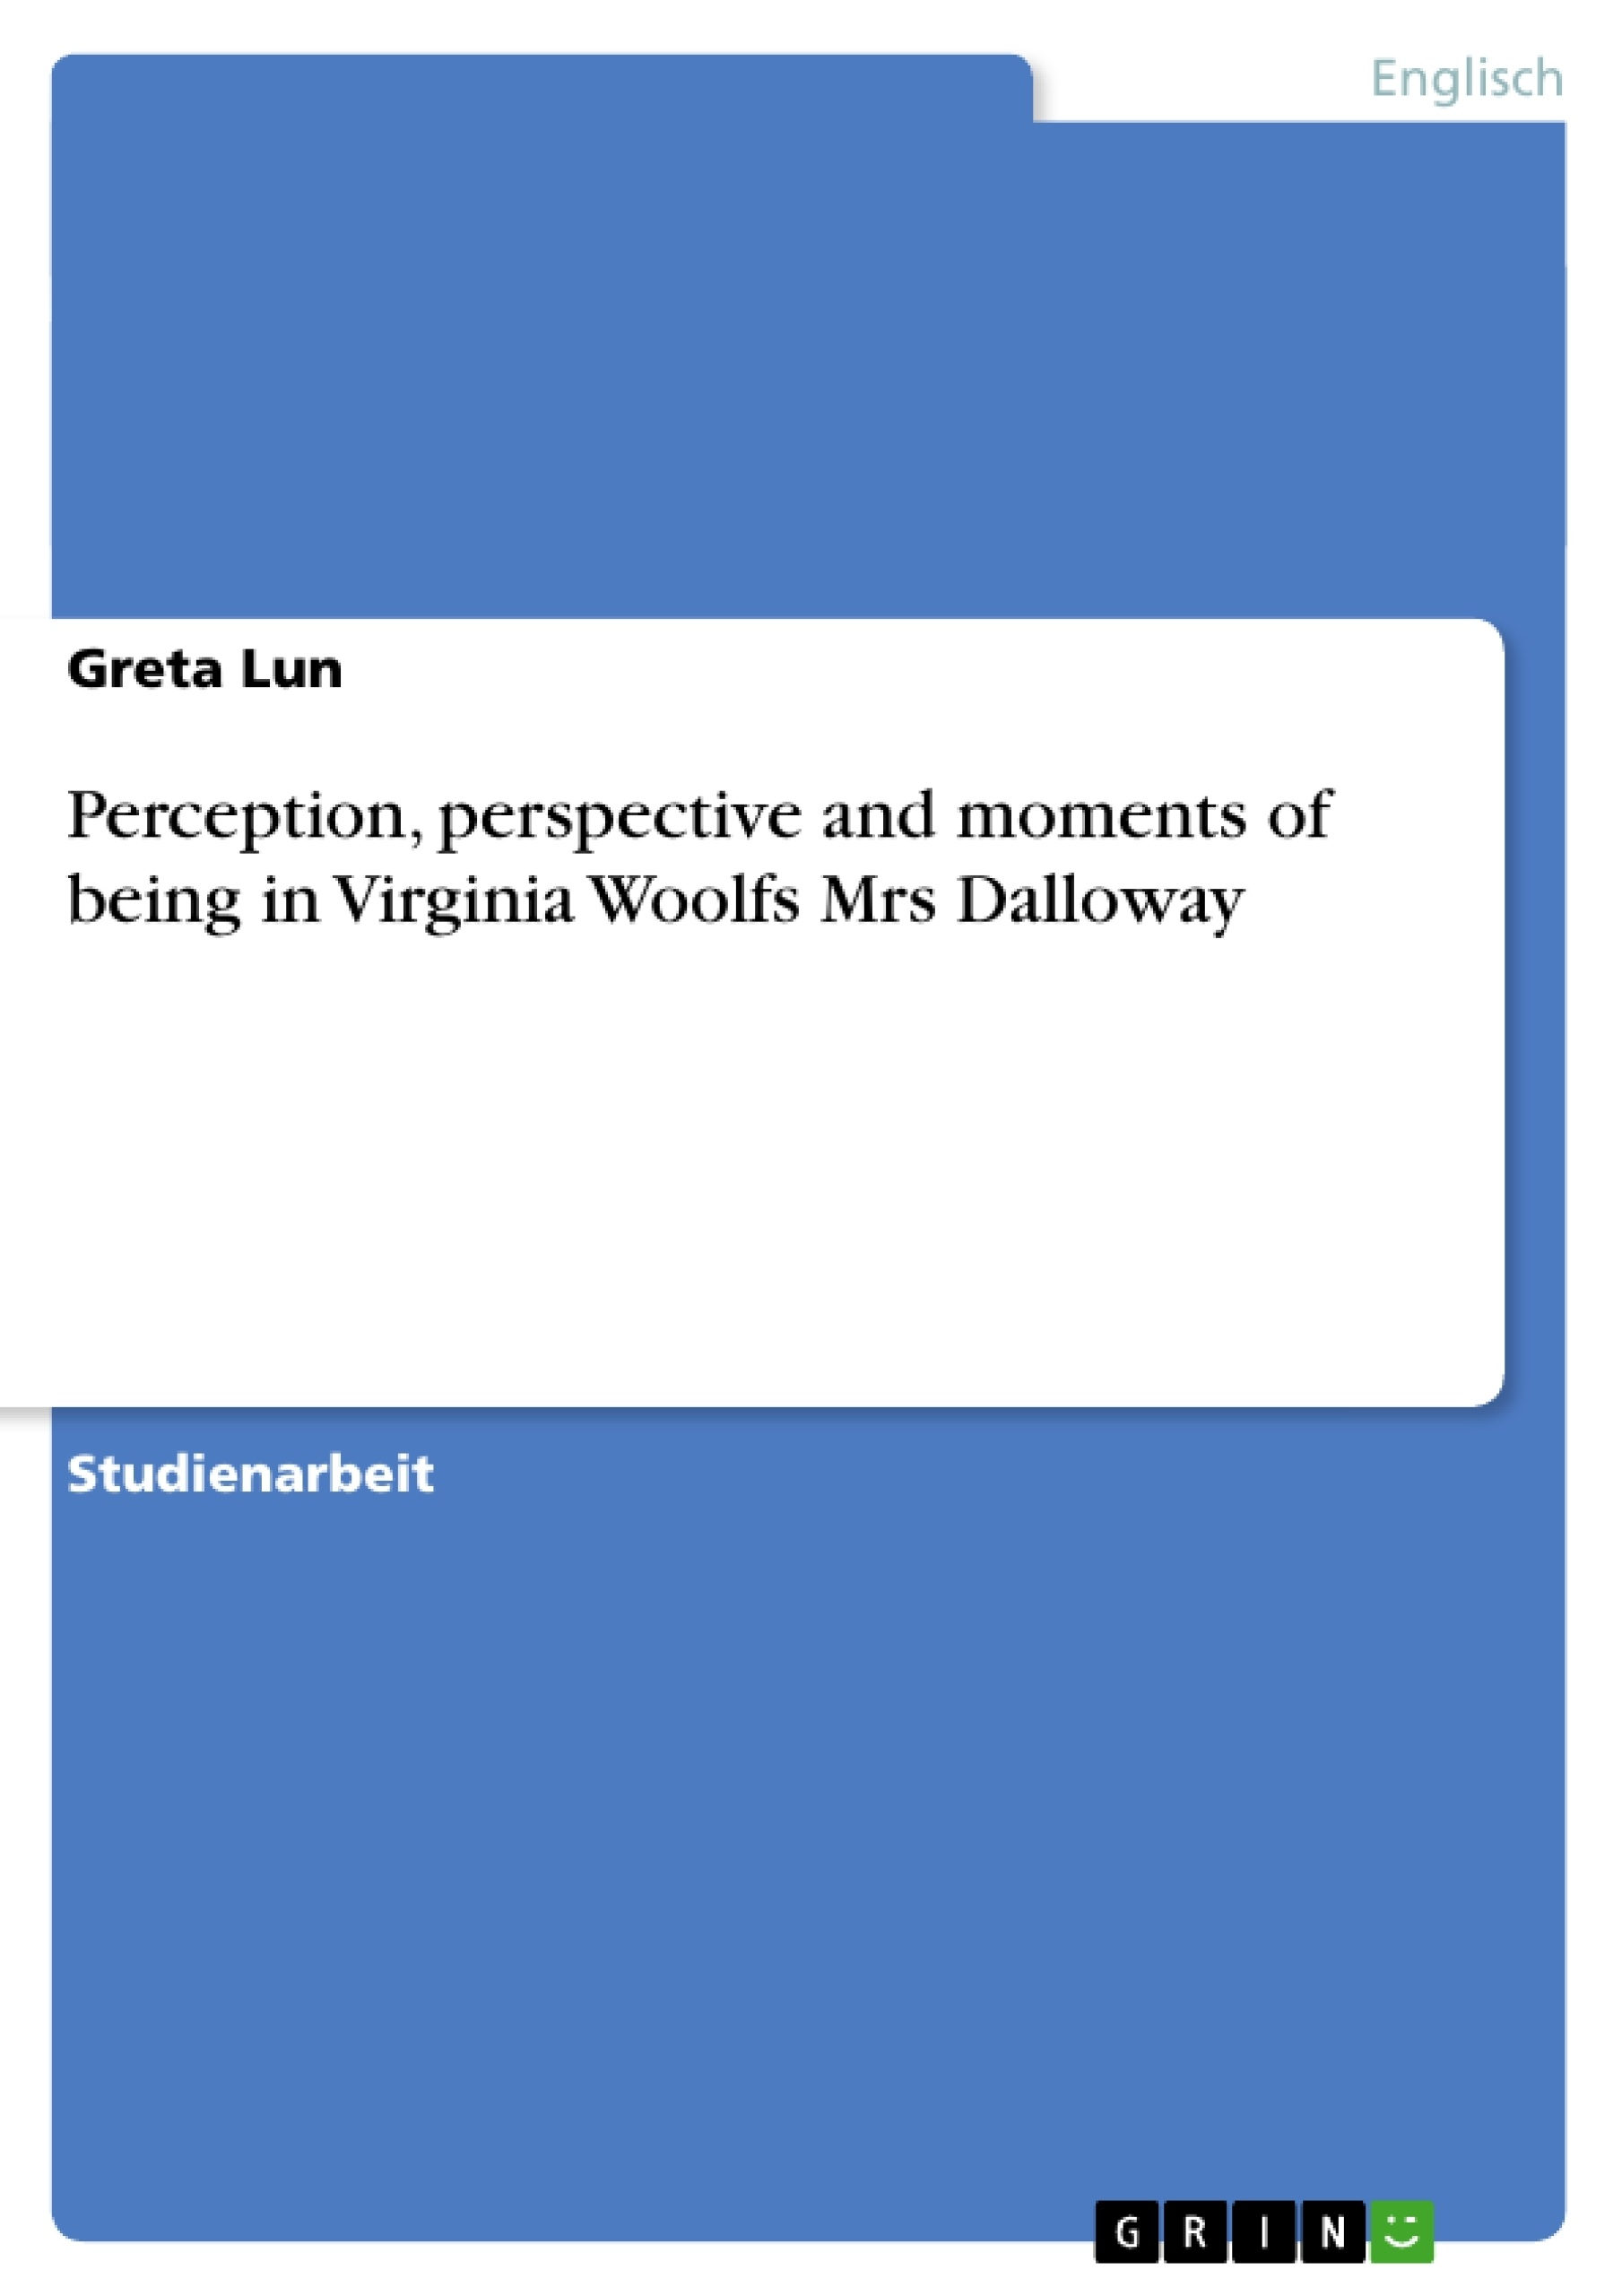 Titel: Perception, perspective and moments of being in Virginia Woolfs Mrs Dalloway